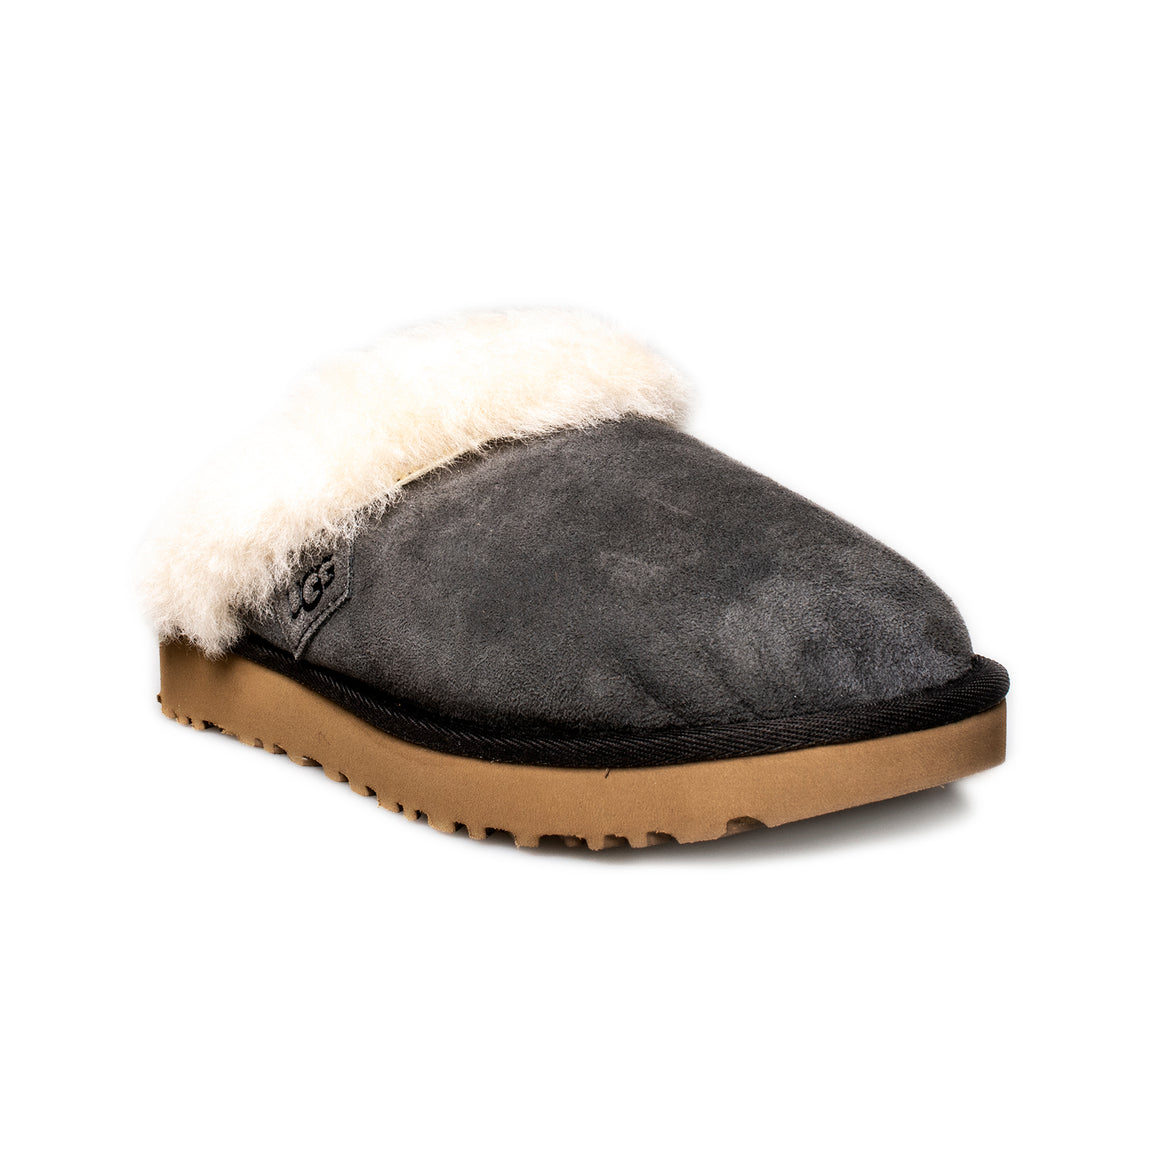 UGG Cluggette Black Olive Slippers - Women's